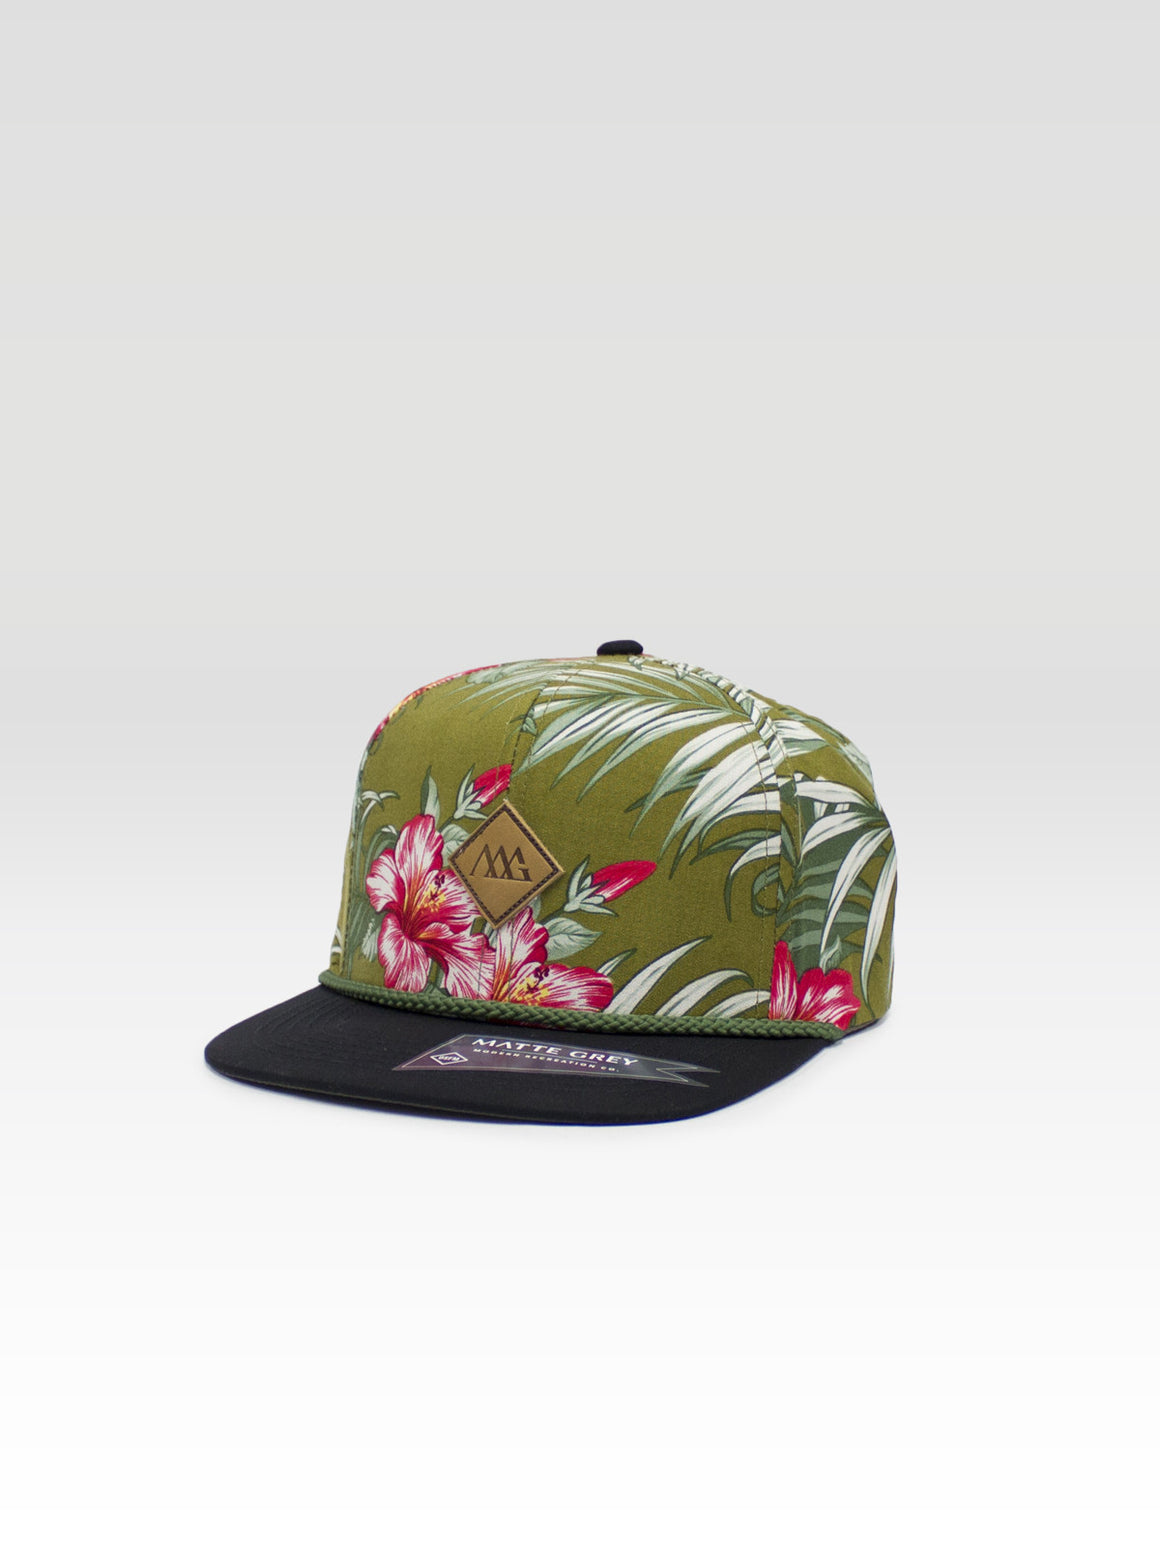 Diamond Aloha Strapback - Olive / Black